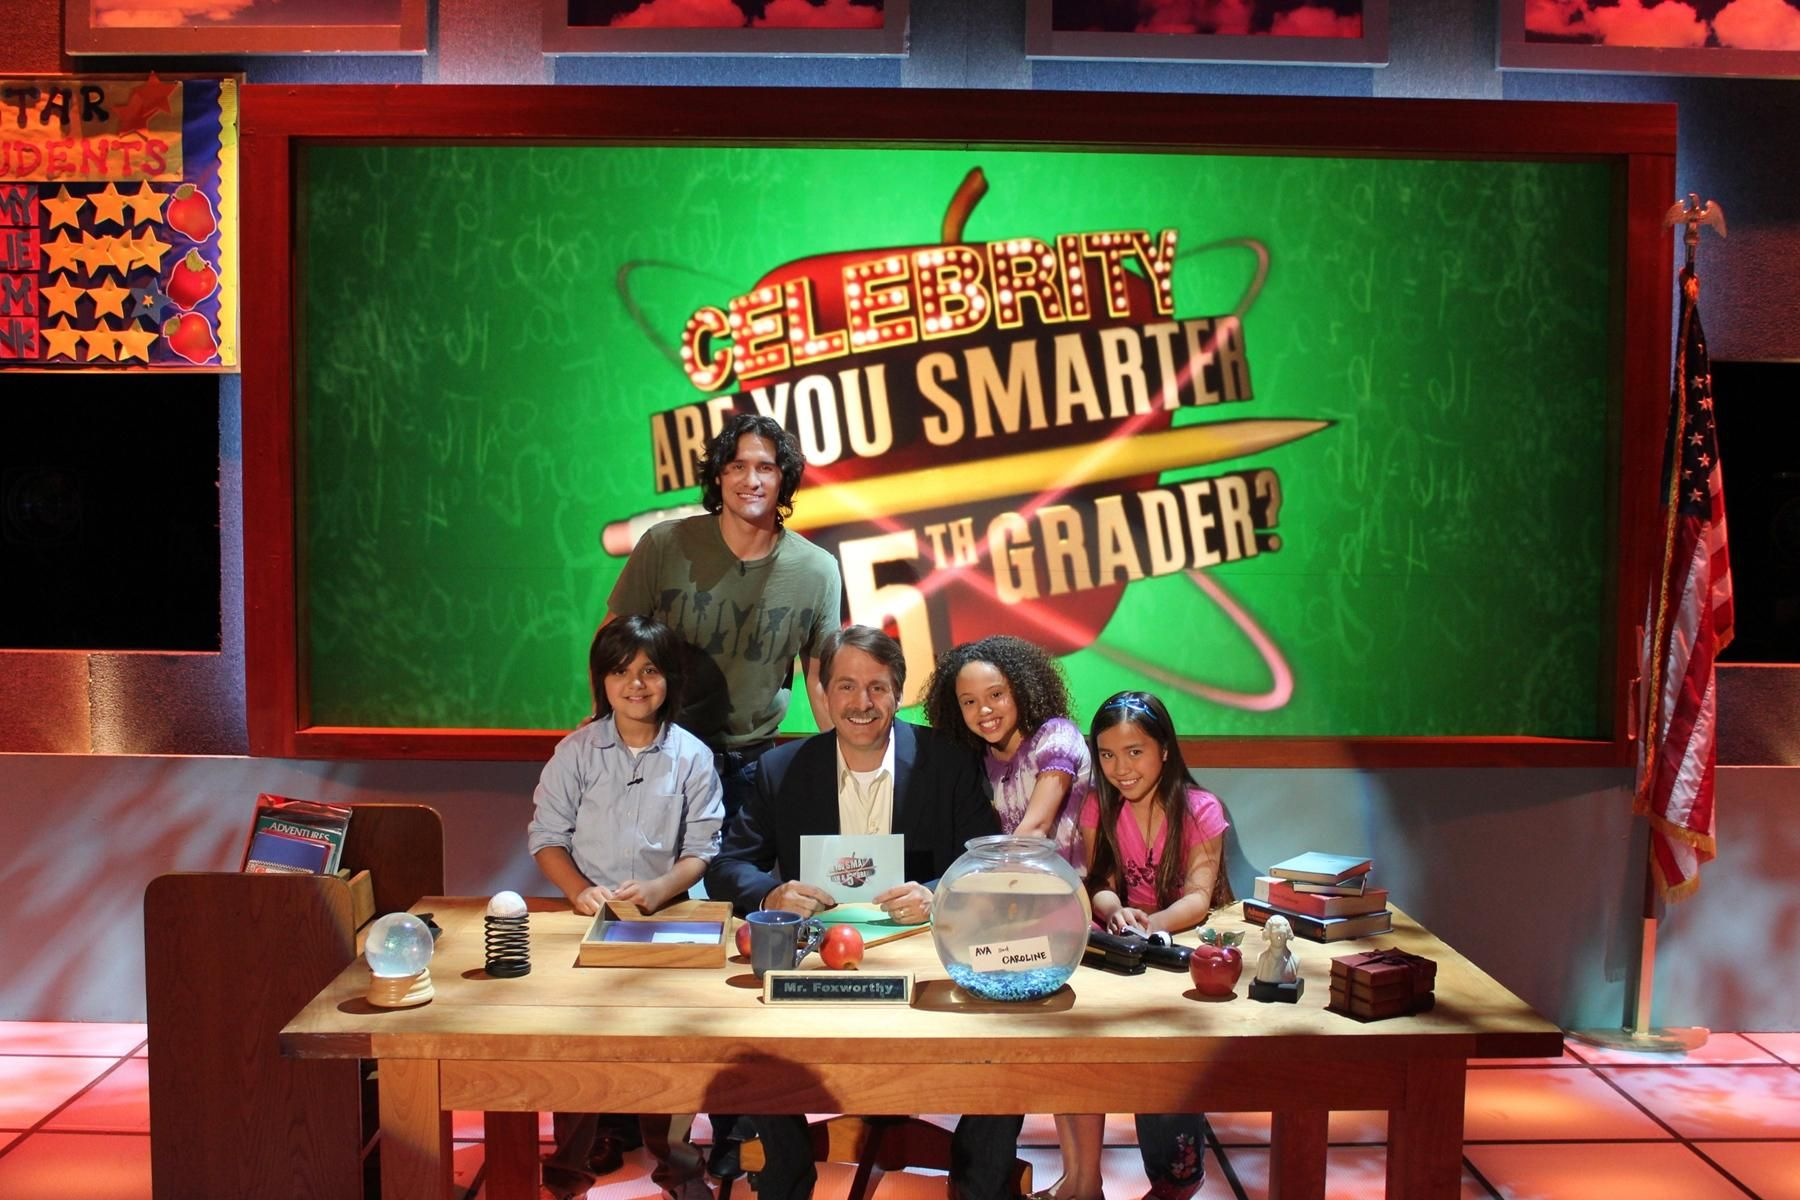 Are You Smarter Than A Fifth Grader Game Shows Games